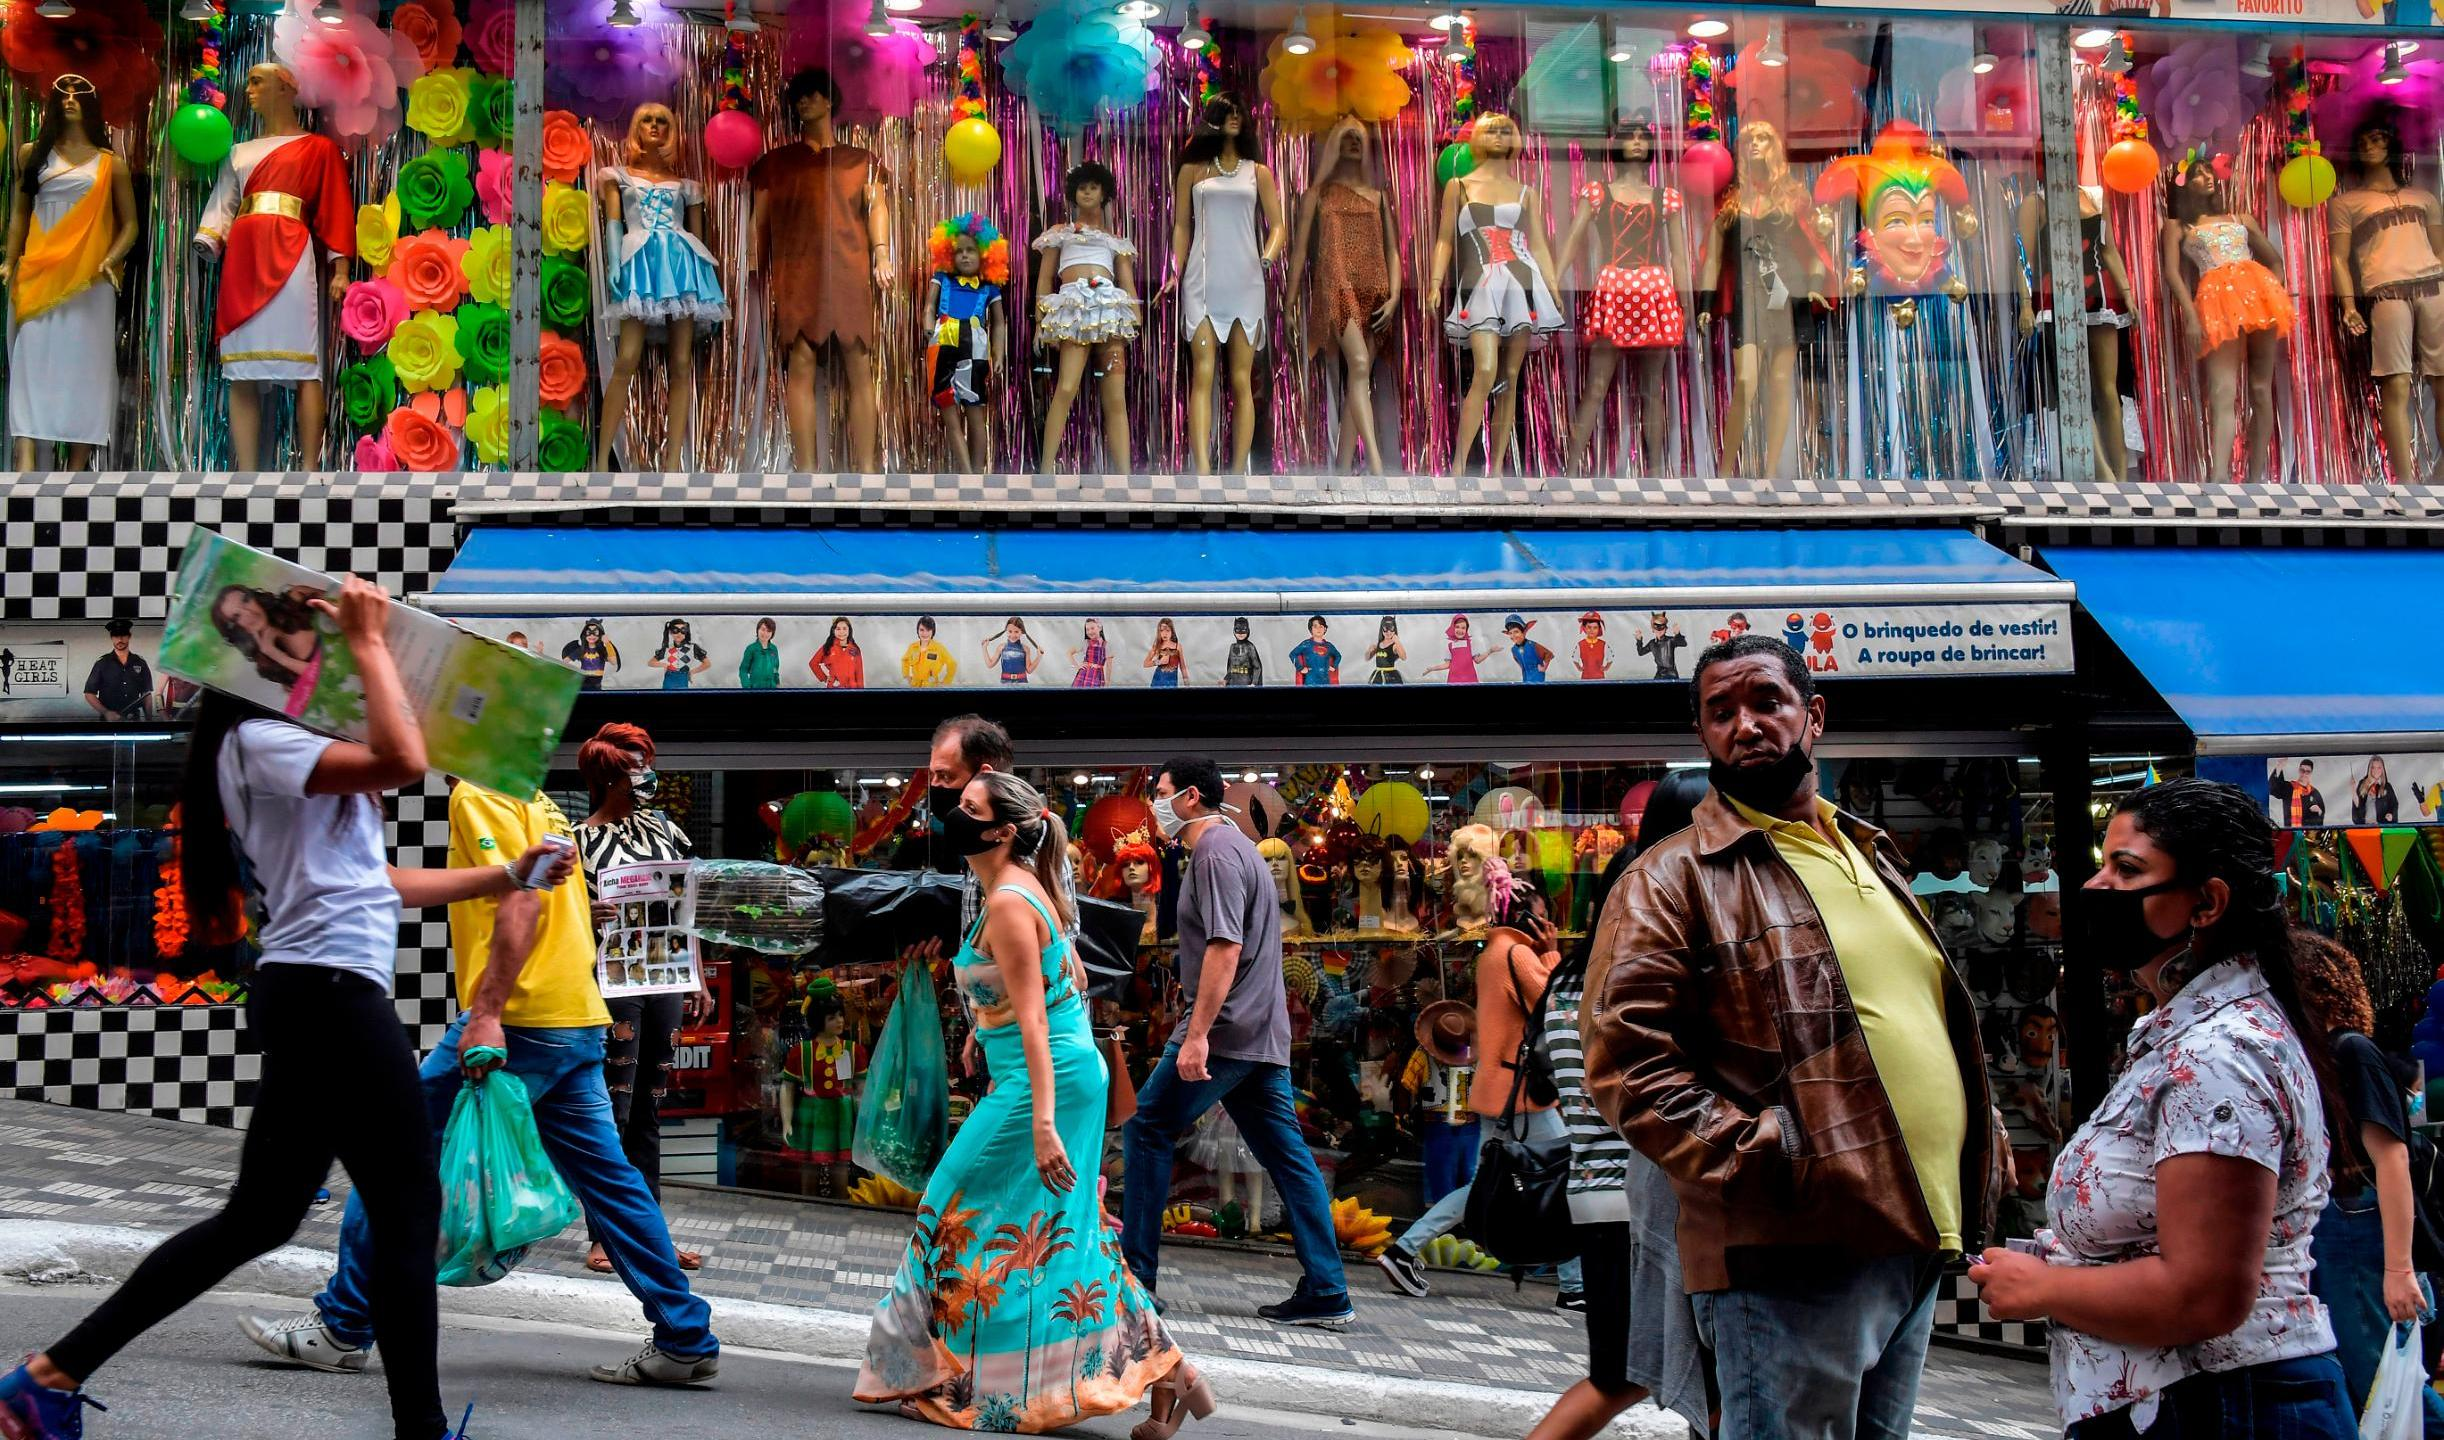 People walk along a street in downtown Sao Paulo, Brazil on June 10, 2020. (NELSON ALMEIDA/AFP/Getty Images)